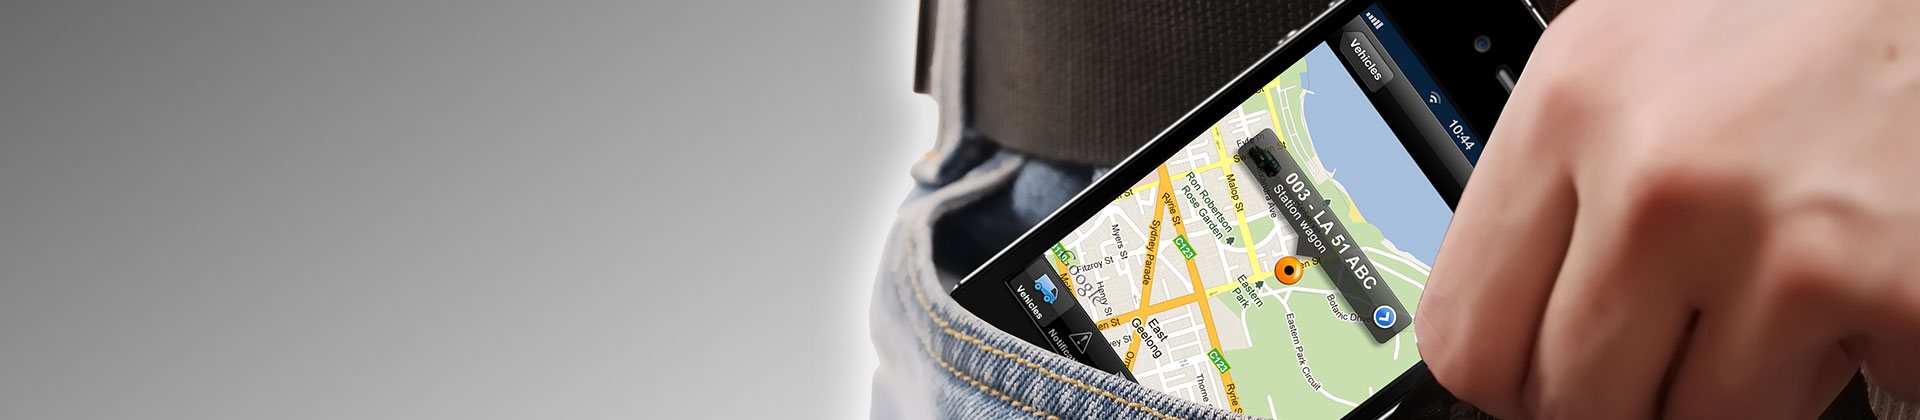 iPhone_Wfleet_inpocket